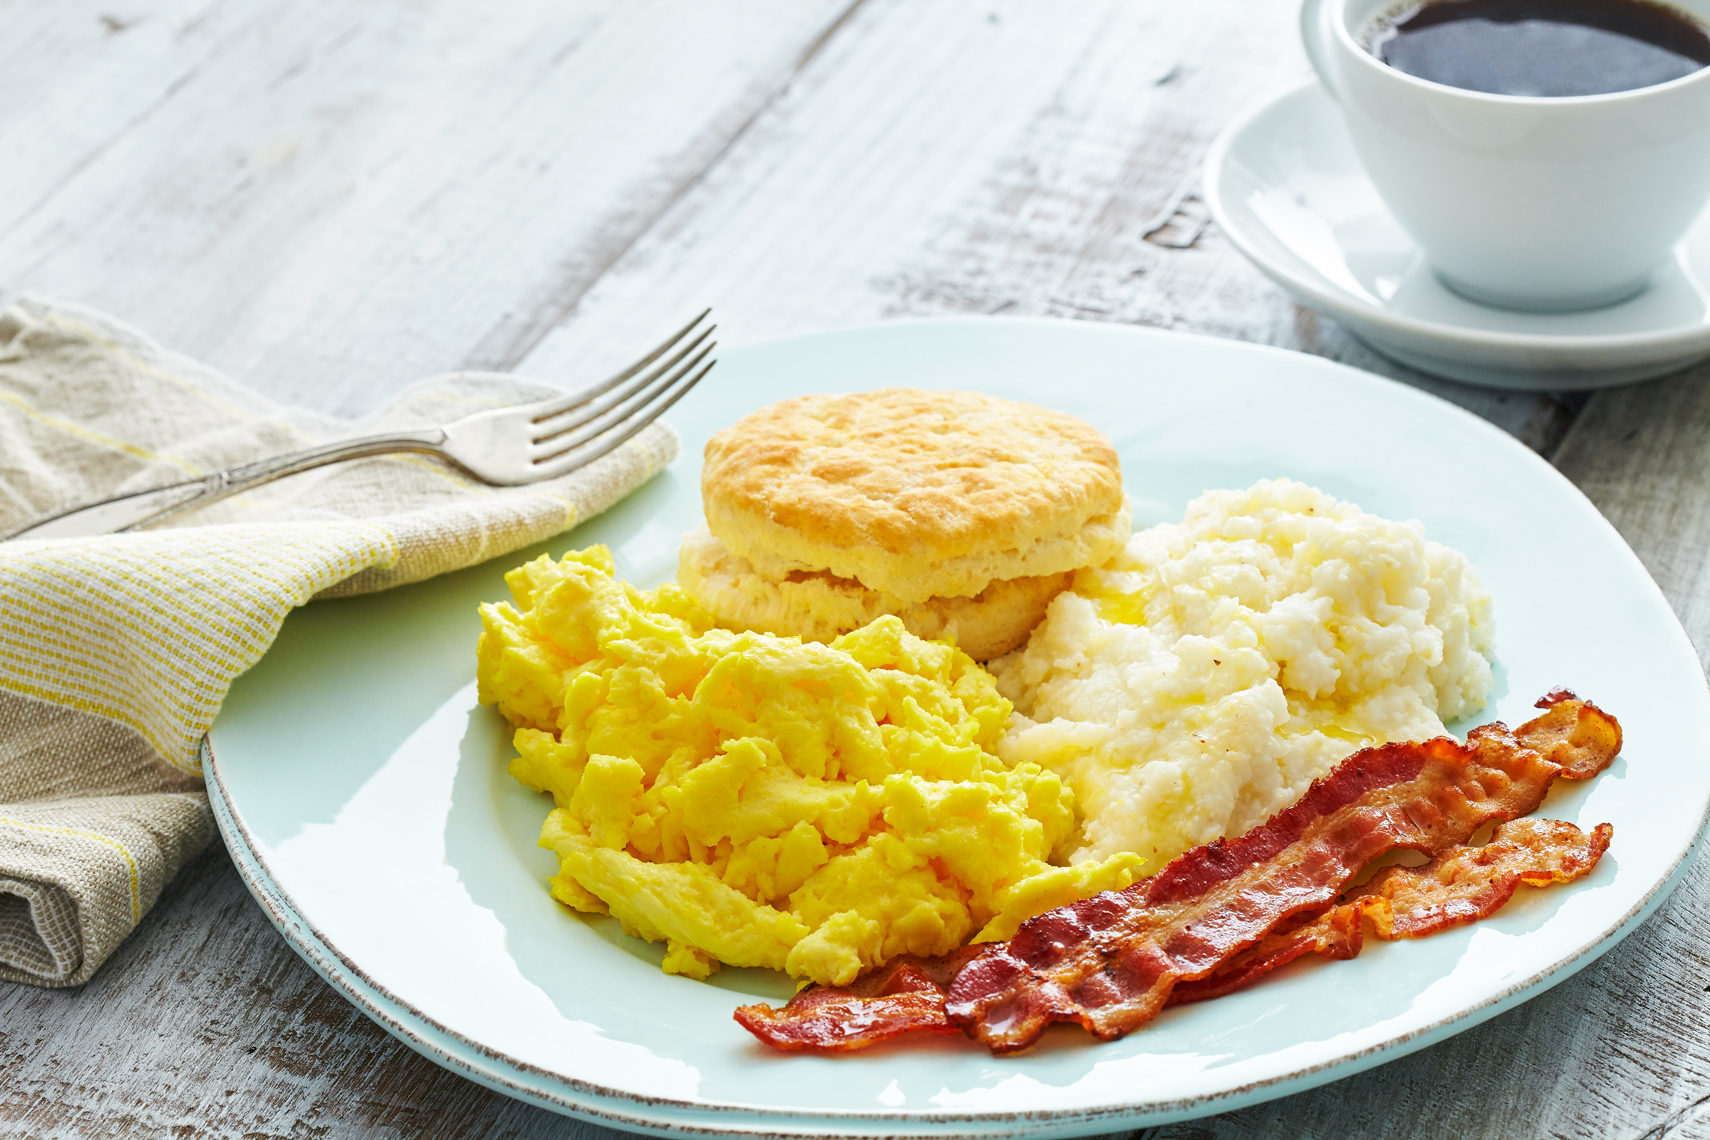 Biscuitville-Scrambled-Eggs-Bacon-Grits-Biscuit